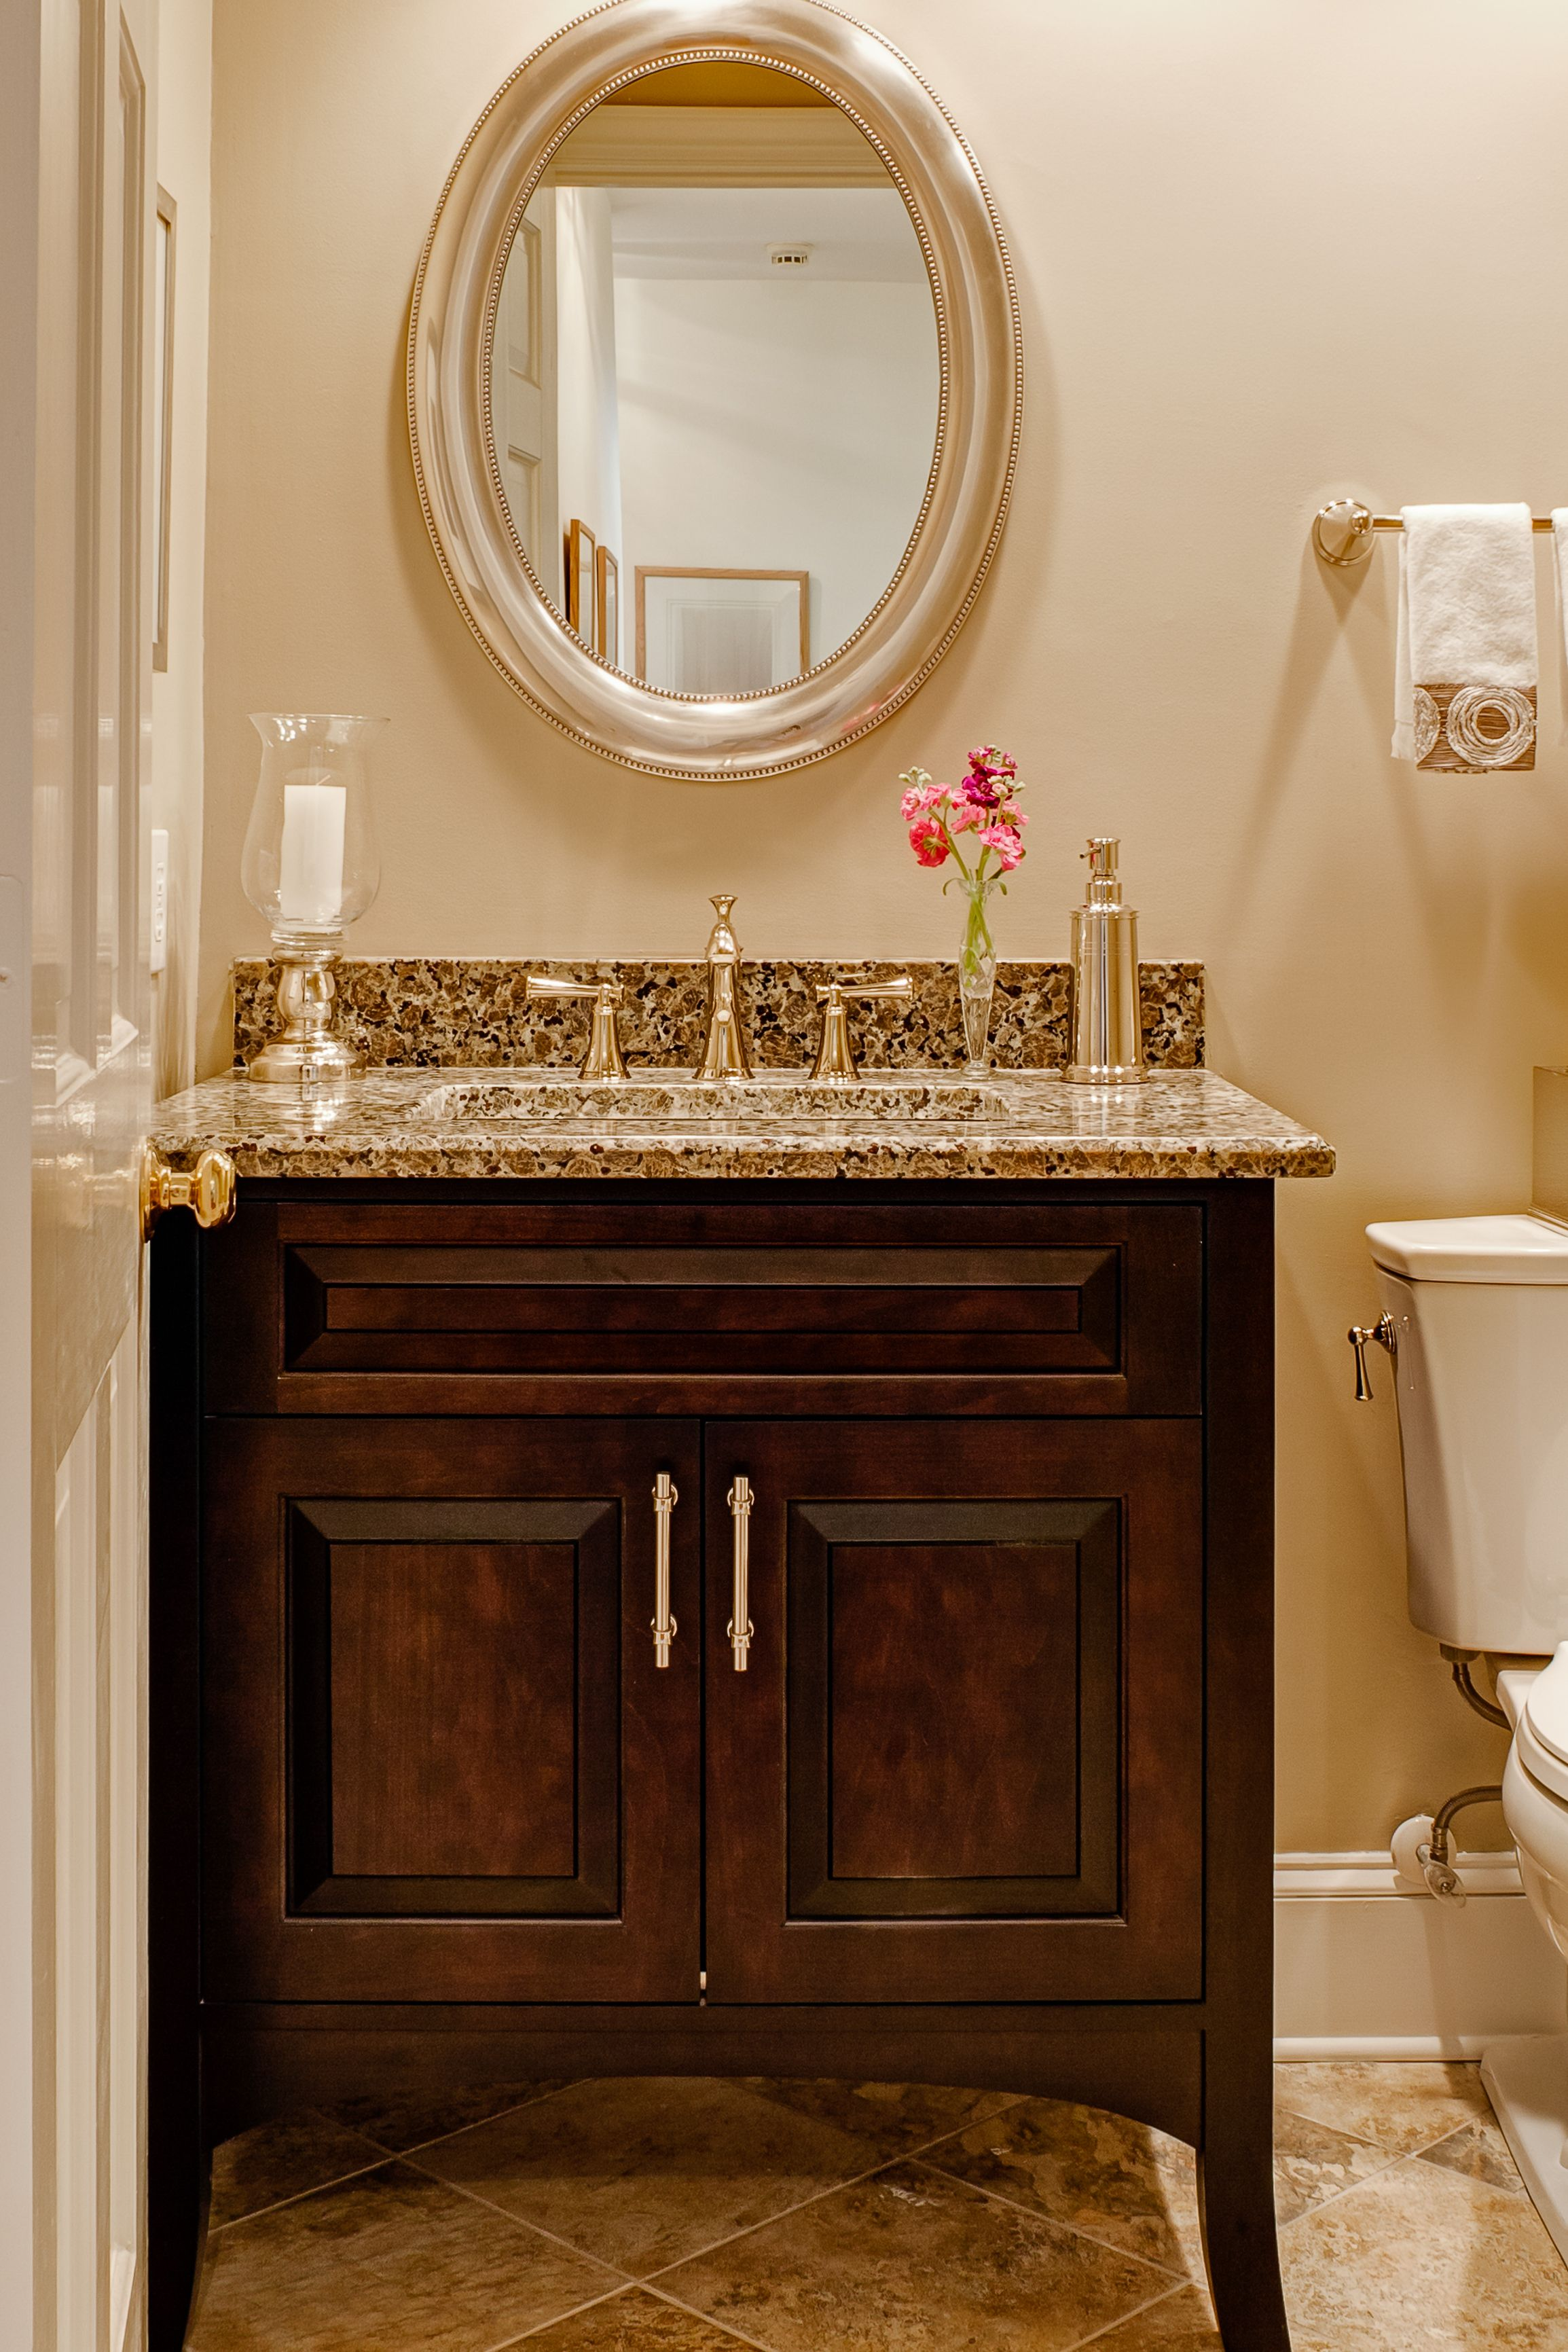 Wonderful 2 Door Powder Room Vanity With Single Sink And Sweet Gray Mosaic Marble Top Also Round Wall Mo Small Bathroom Vanities Powder Room Vanity Powder Room